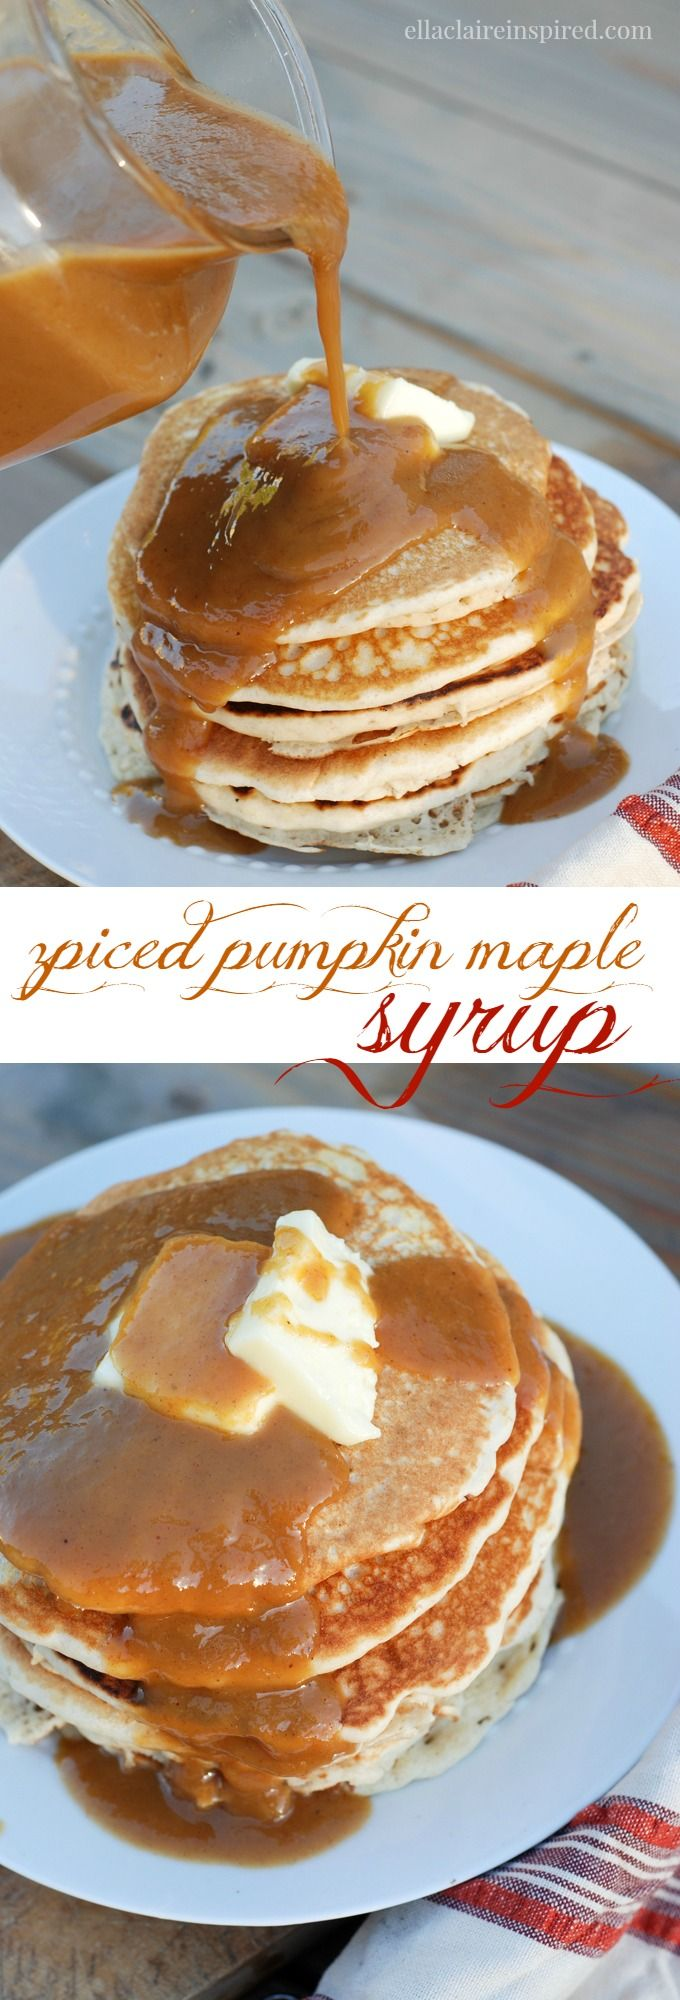 Pumpkin Spice Maple Syrup by Ella Claire Inspired